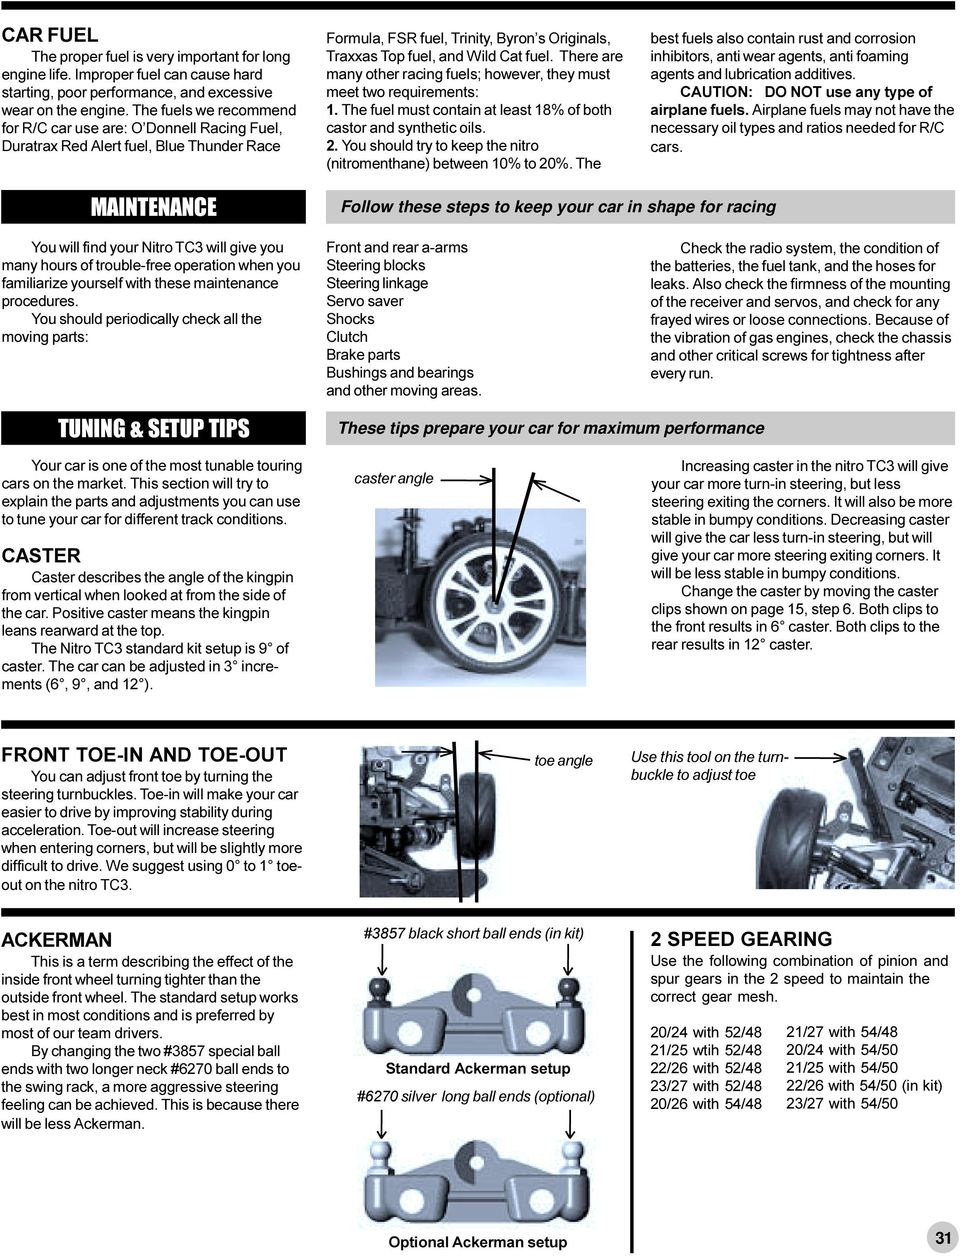 Make these adjustments before racing - PDF